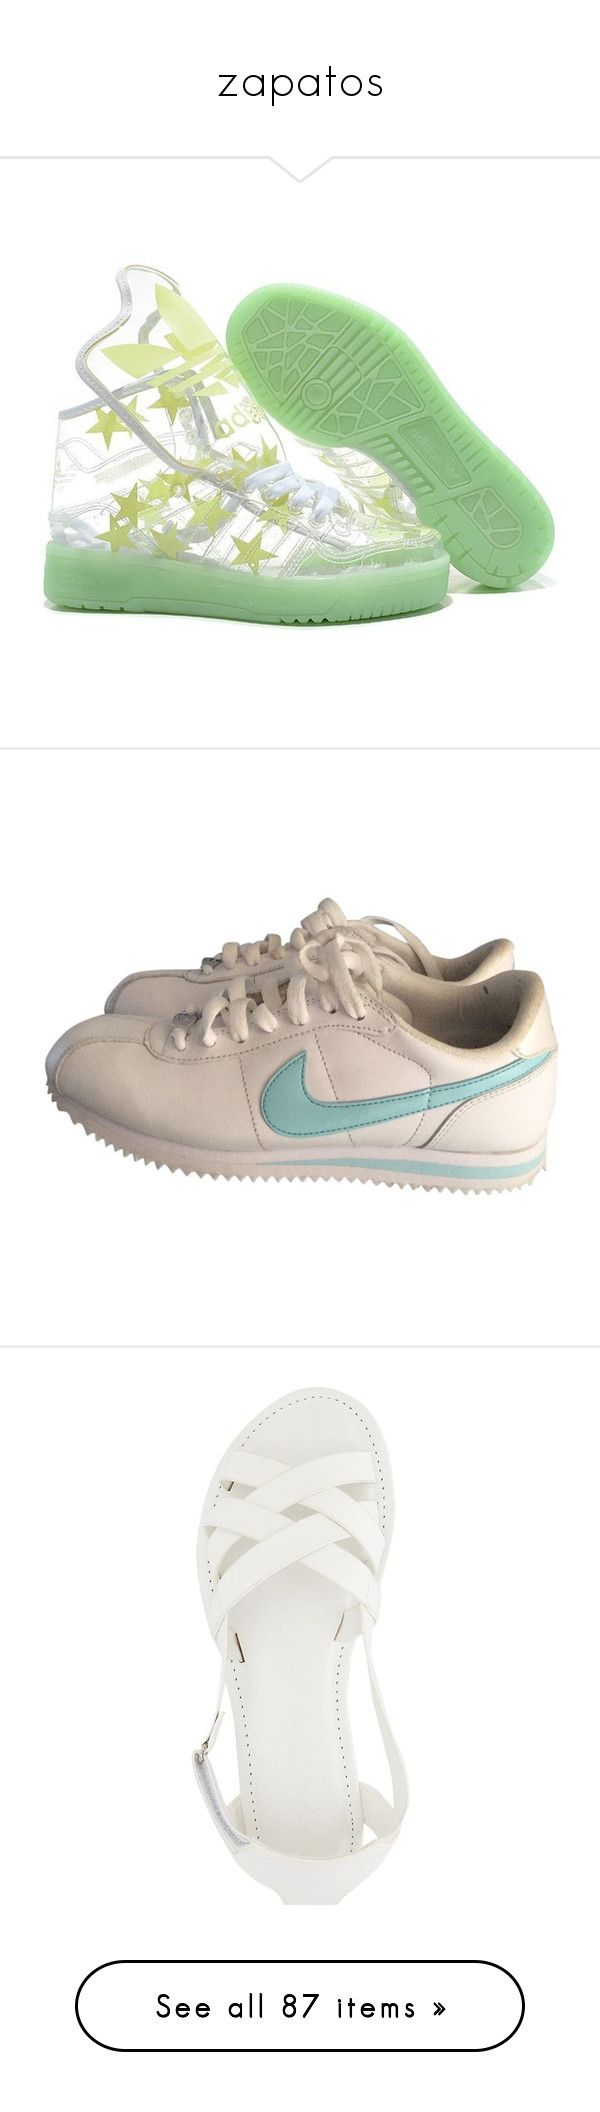 """""""zapatos"""" by iamdeadpoetry ❤ liked on Polyvore featuring Boots, shoes, Unique, booties, sneakers, shoes - sneakers, nike trainers, white trainers, white sneakers and leather trainers"""